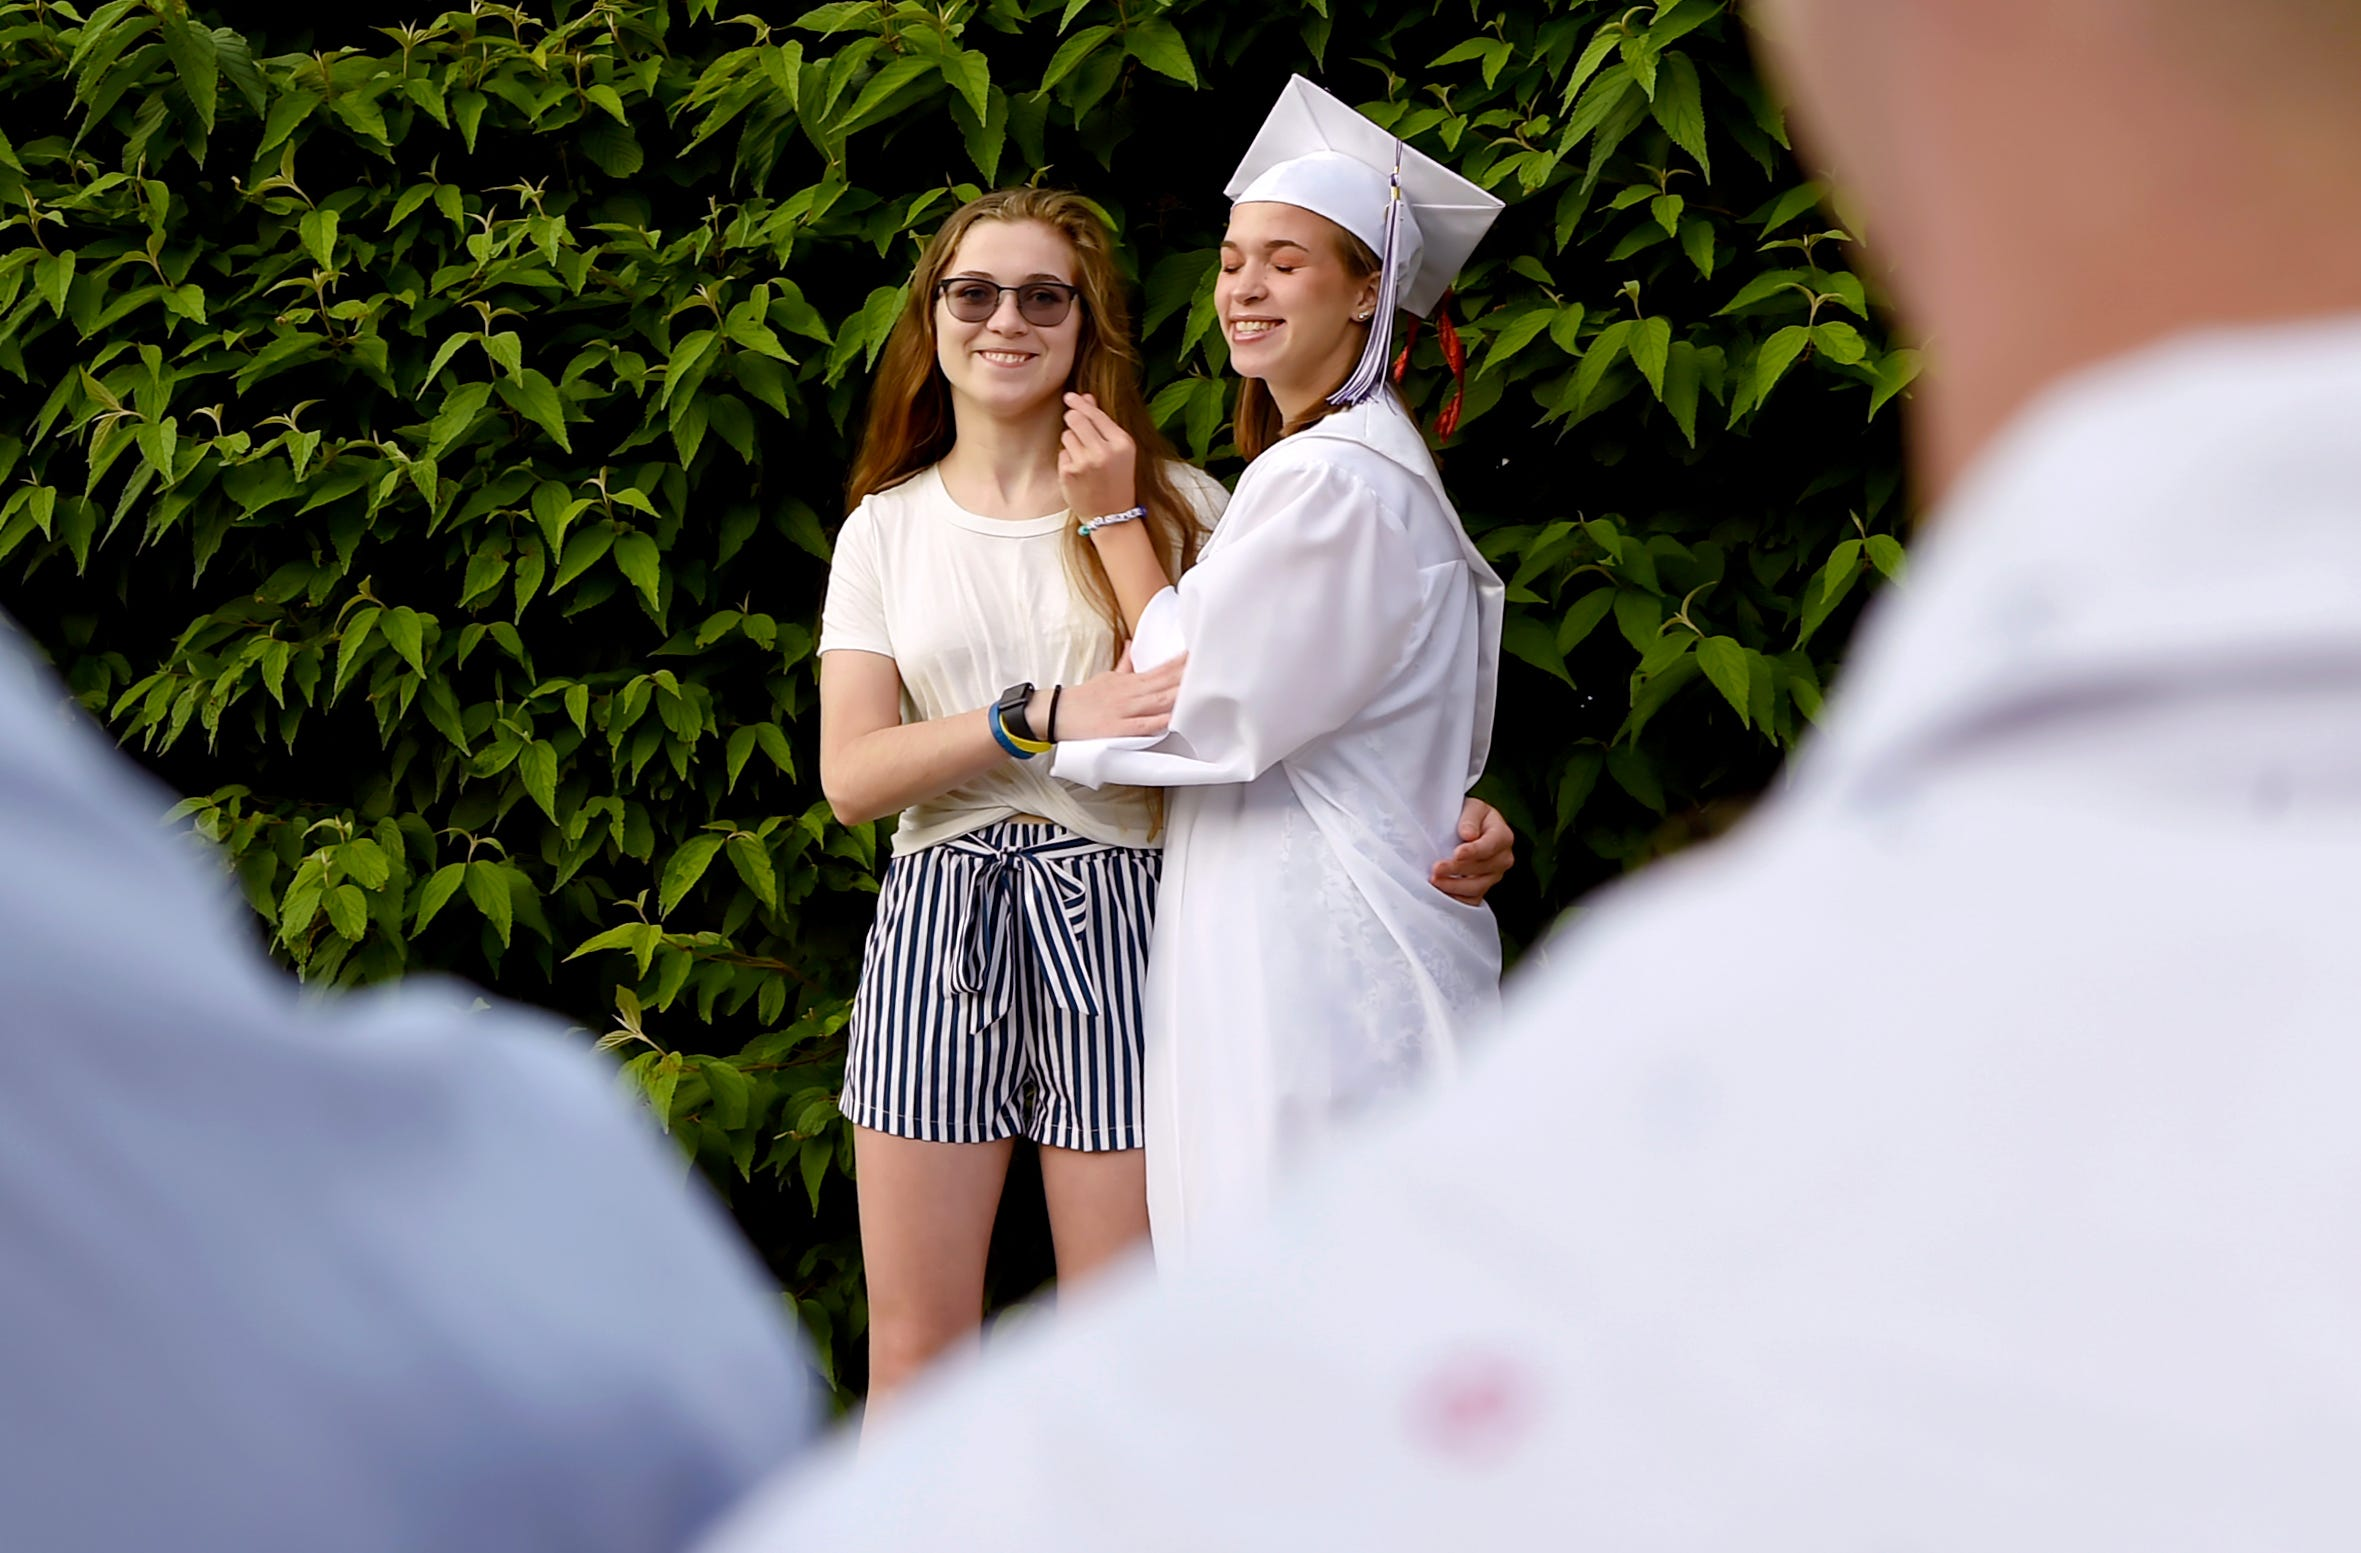 Sisters Bethany and Emily Brown before Emily's graduation from Downsville High School on Friday, June 28, 2019. Both Bethany and Emily were diagnosed with cystic fibrosis as toddlers.